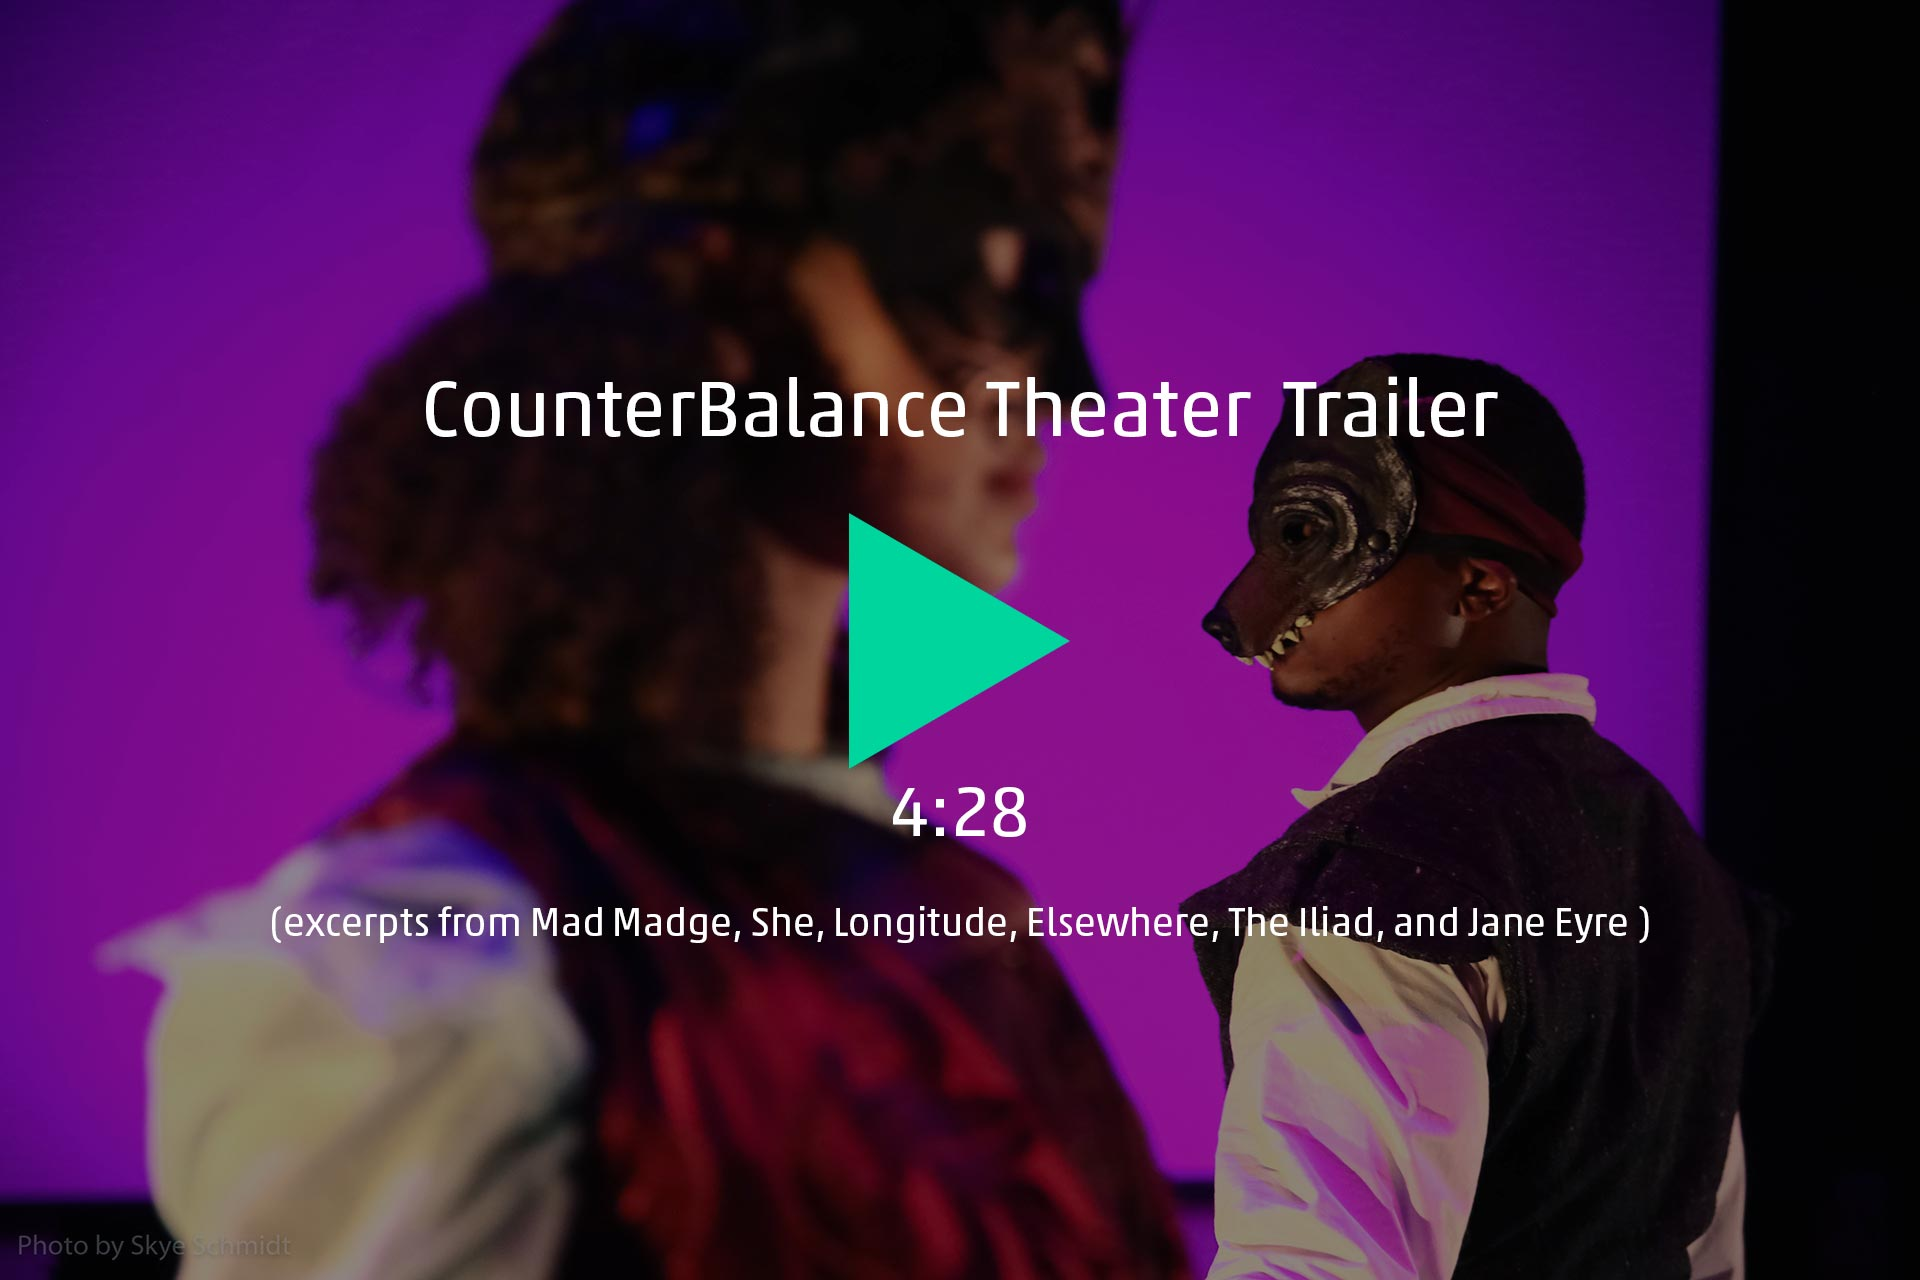 CounterBalance Theater Trailer